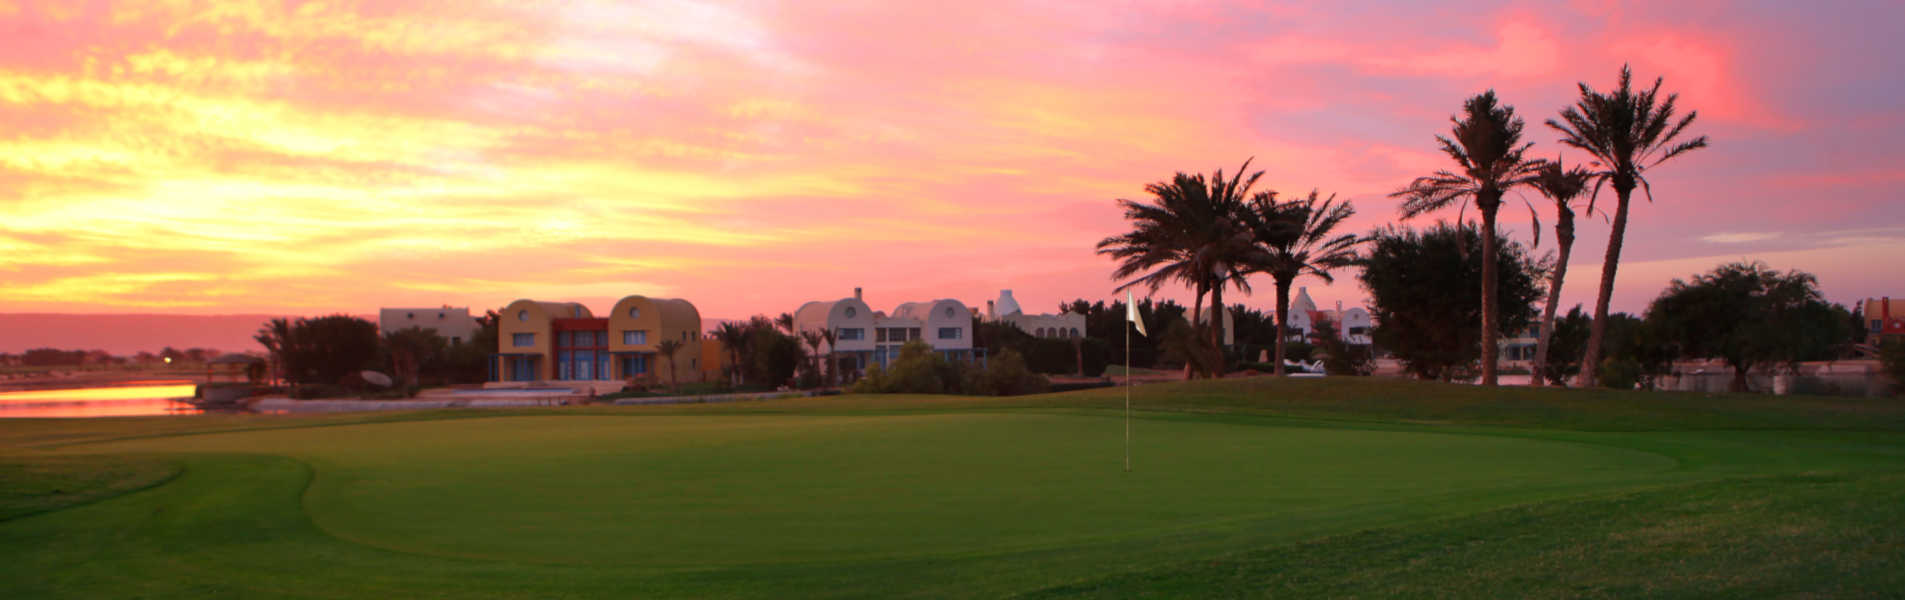 golf field on sunset at steigenberger golf resort el gouna